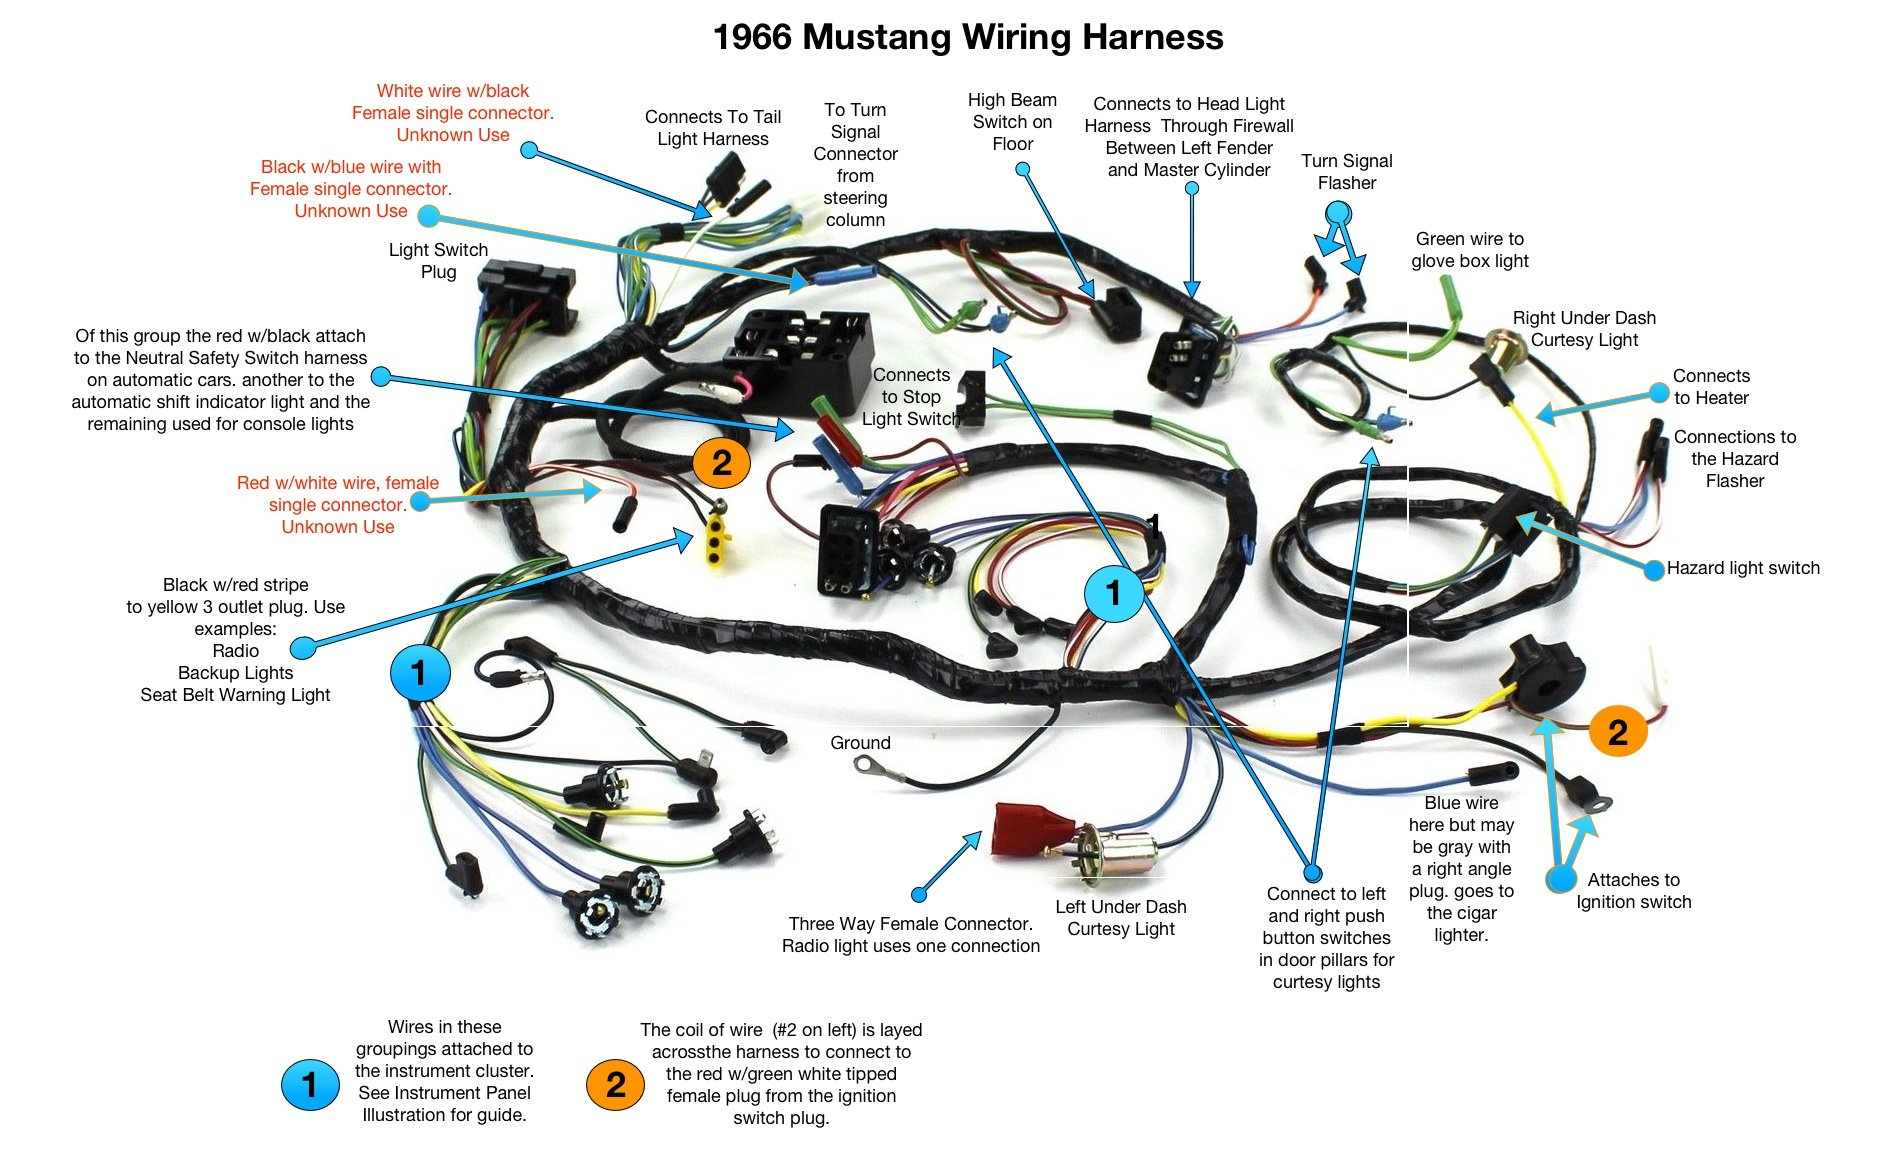 Wiring Harness Diagram Ford Mustang Will Be A Thing 65 Chevy Truck Turn Signal 66 Forum Rh Allfordmustangs Com 1993 91